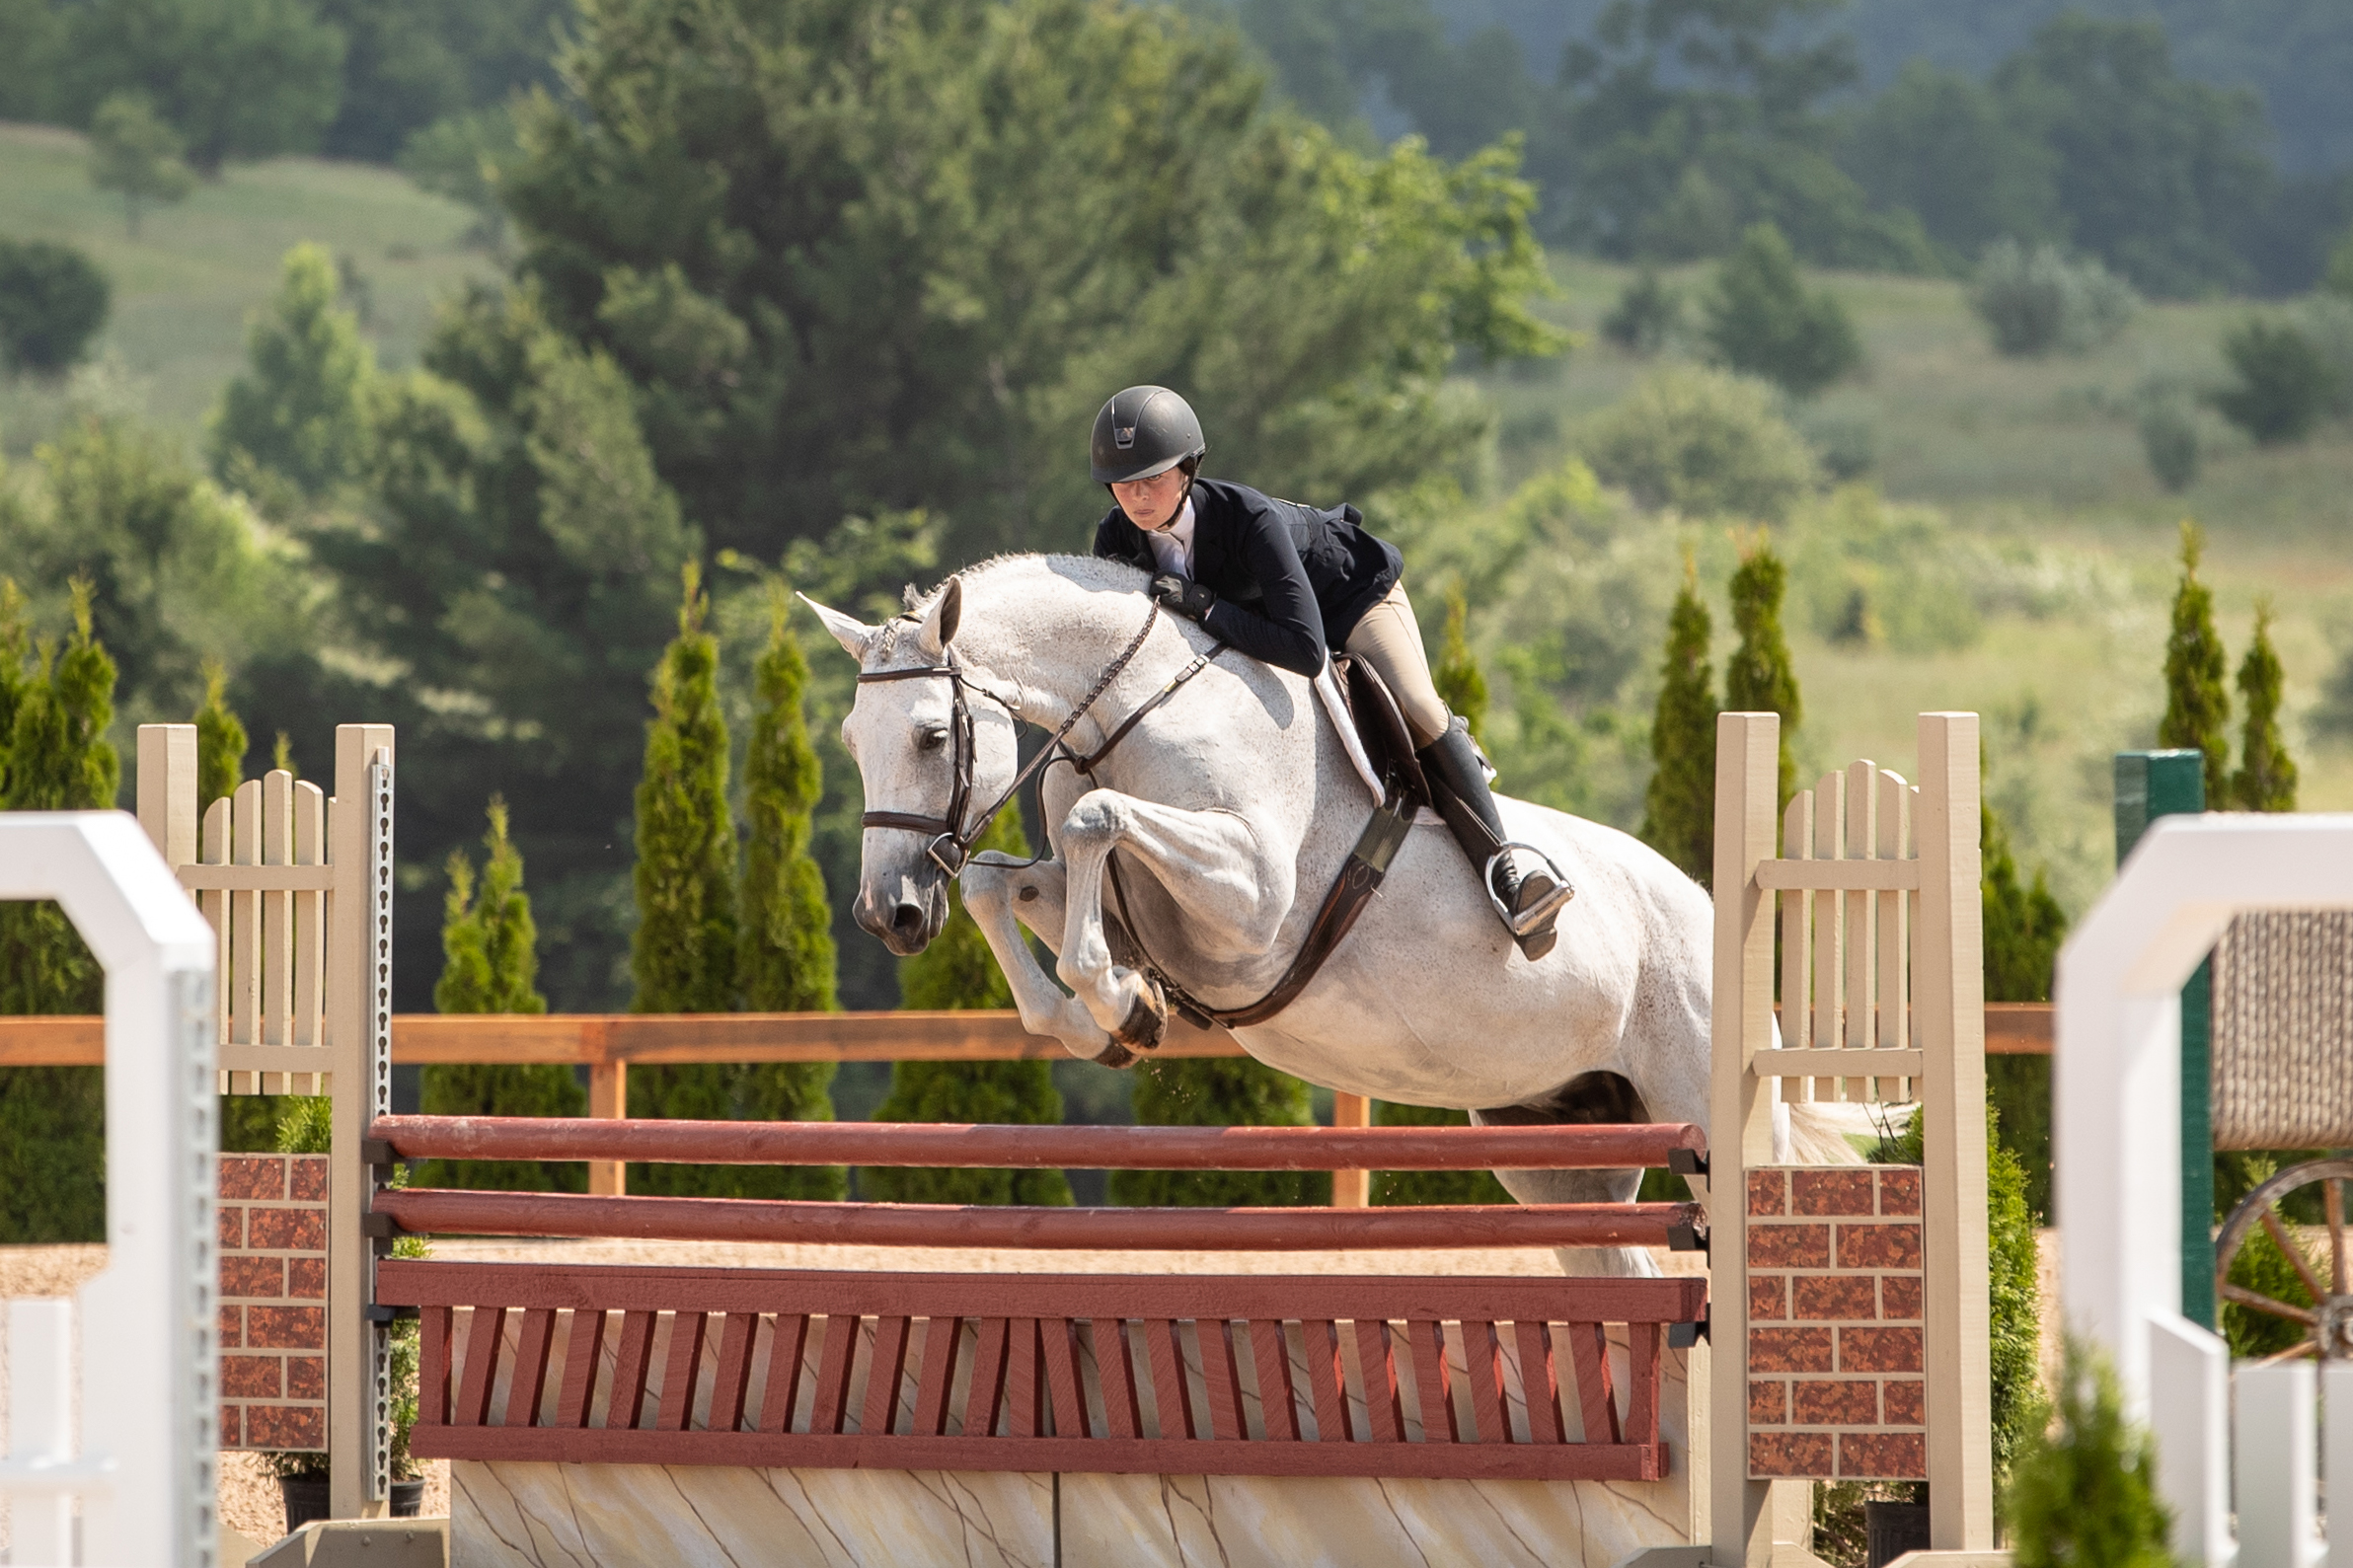 Hannah Hoch rode Cakewalk to a second place finish in the $800 Children's Hunter NAL/WIHS Classic!  Read more about Cakewalk here !